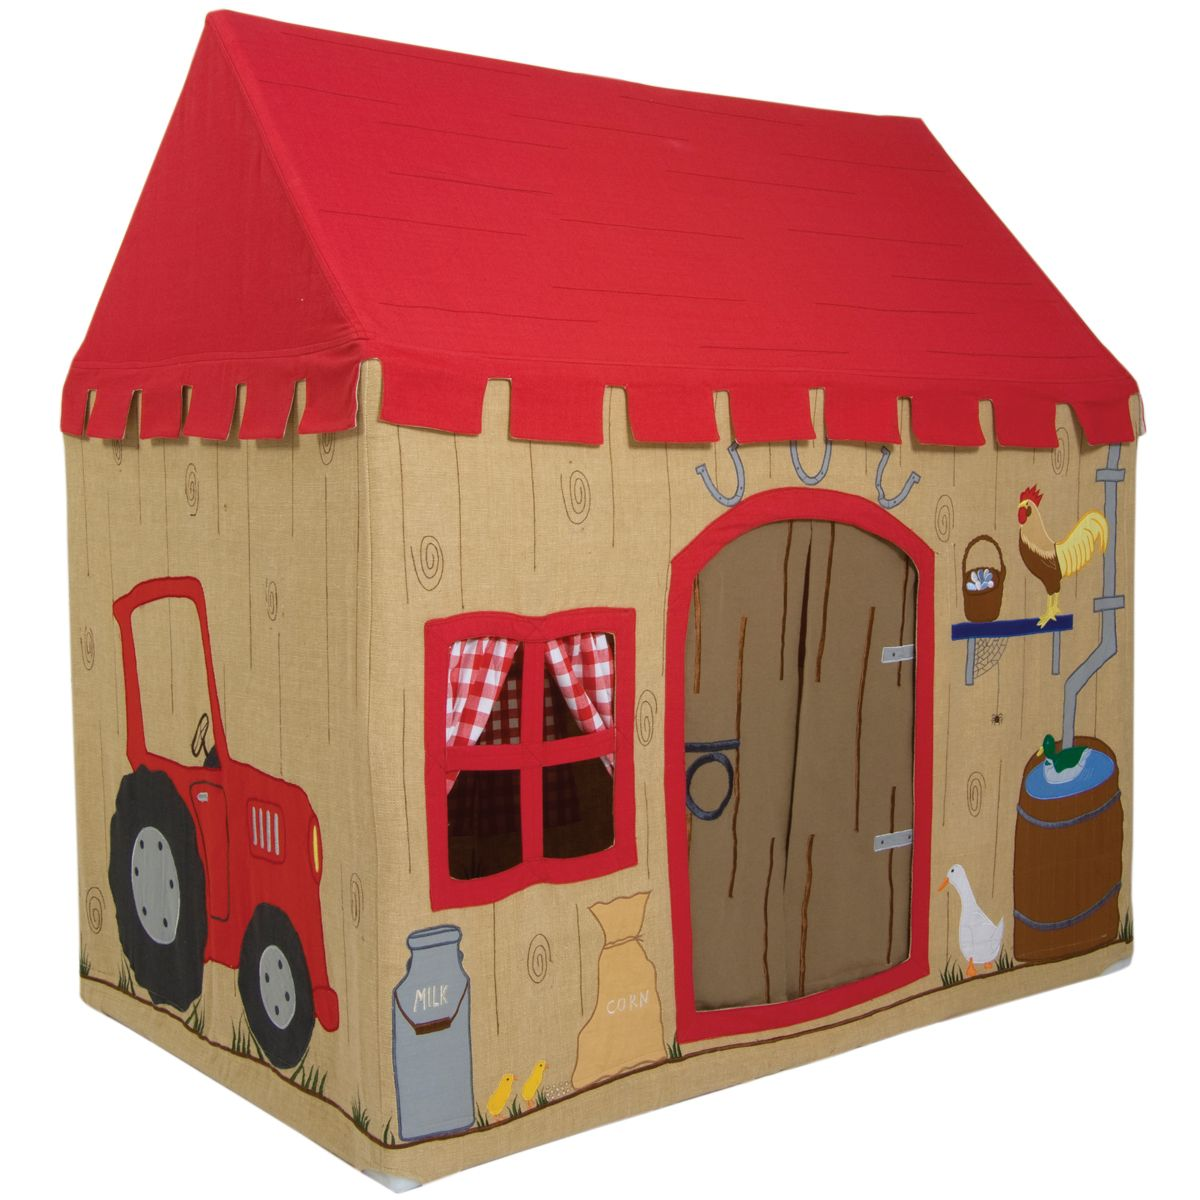 boys barn playhouse - fabric tent indoor playhouse for boys  sc 1 st  Pinterest & boys barn playhouse - fabric tent indoor playhouse for boys | Kid ...